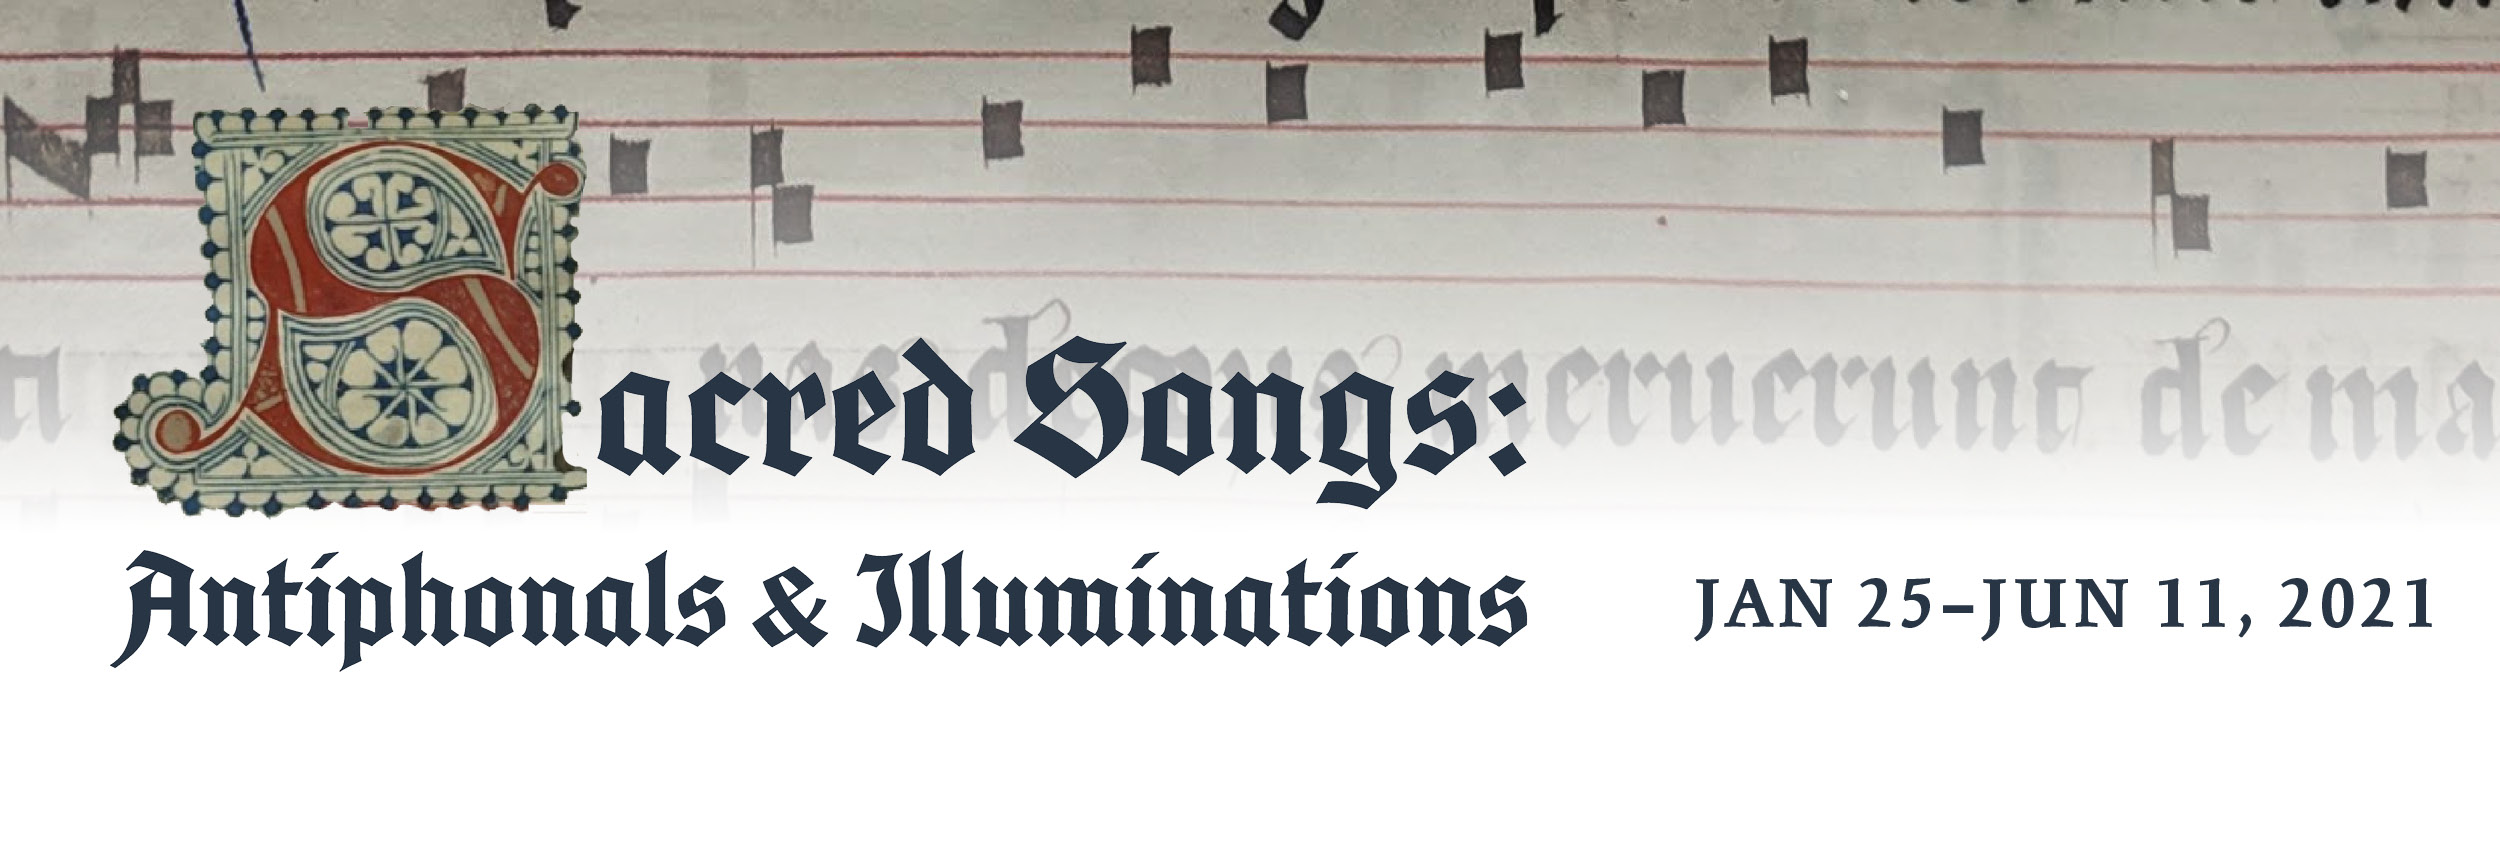 Sacred Songs: Illuminations and Antiphonals